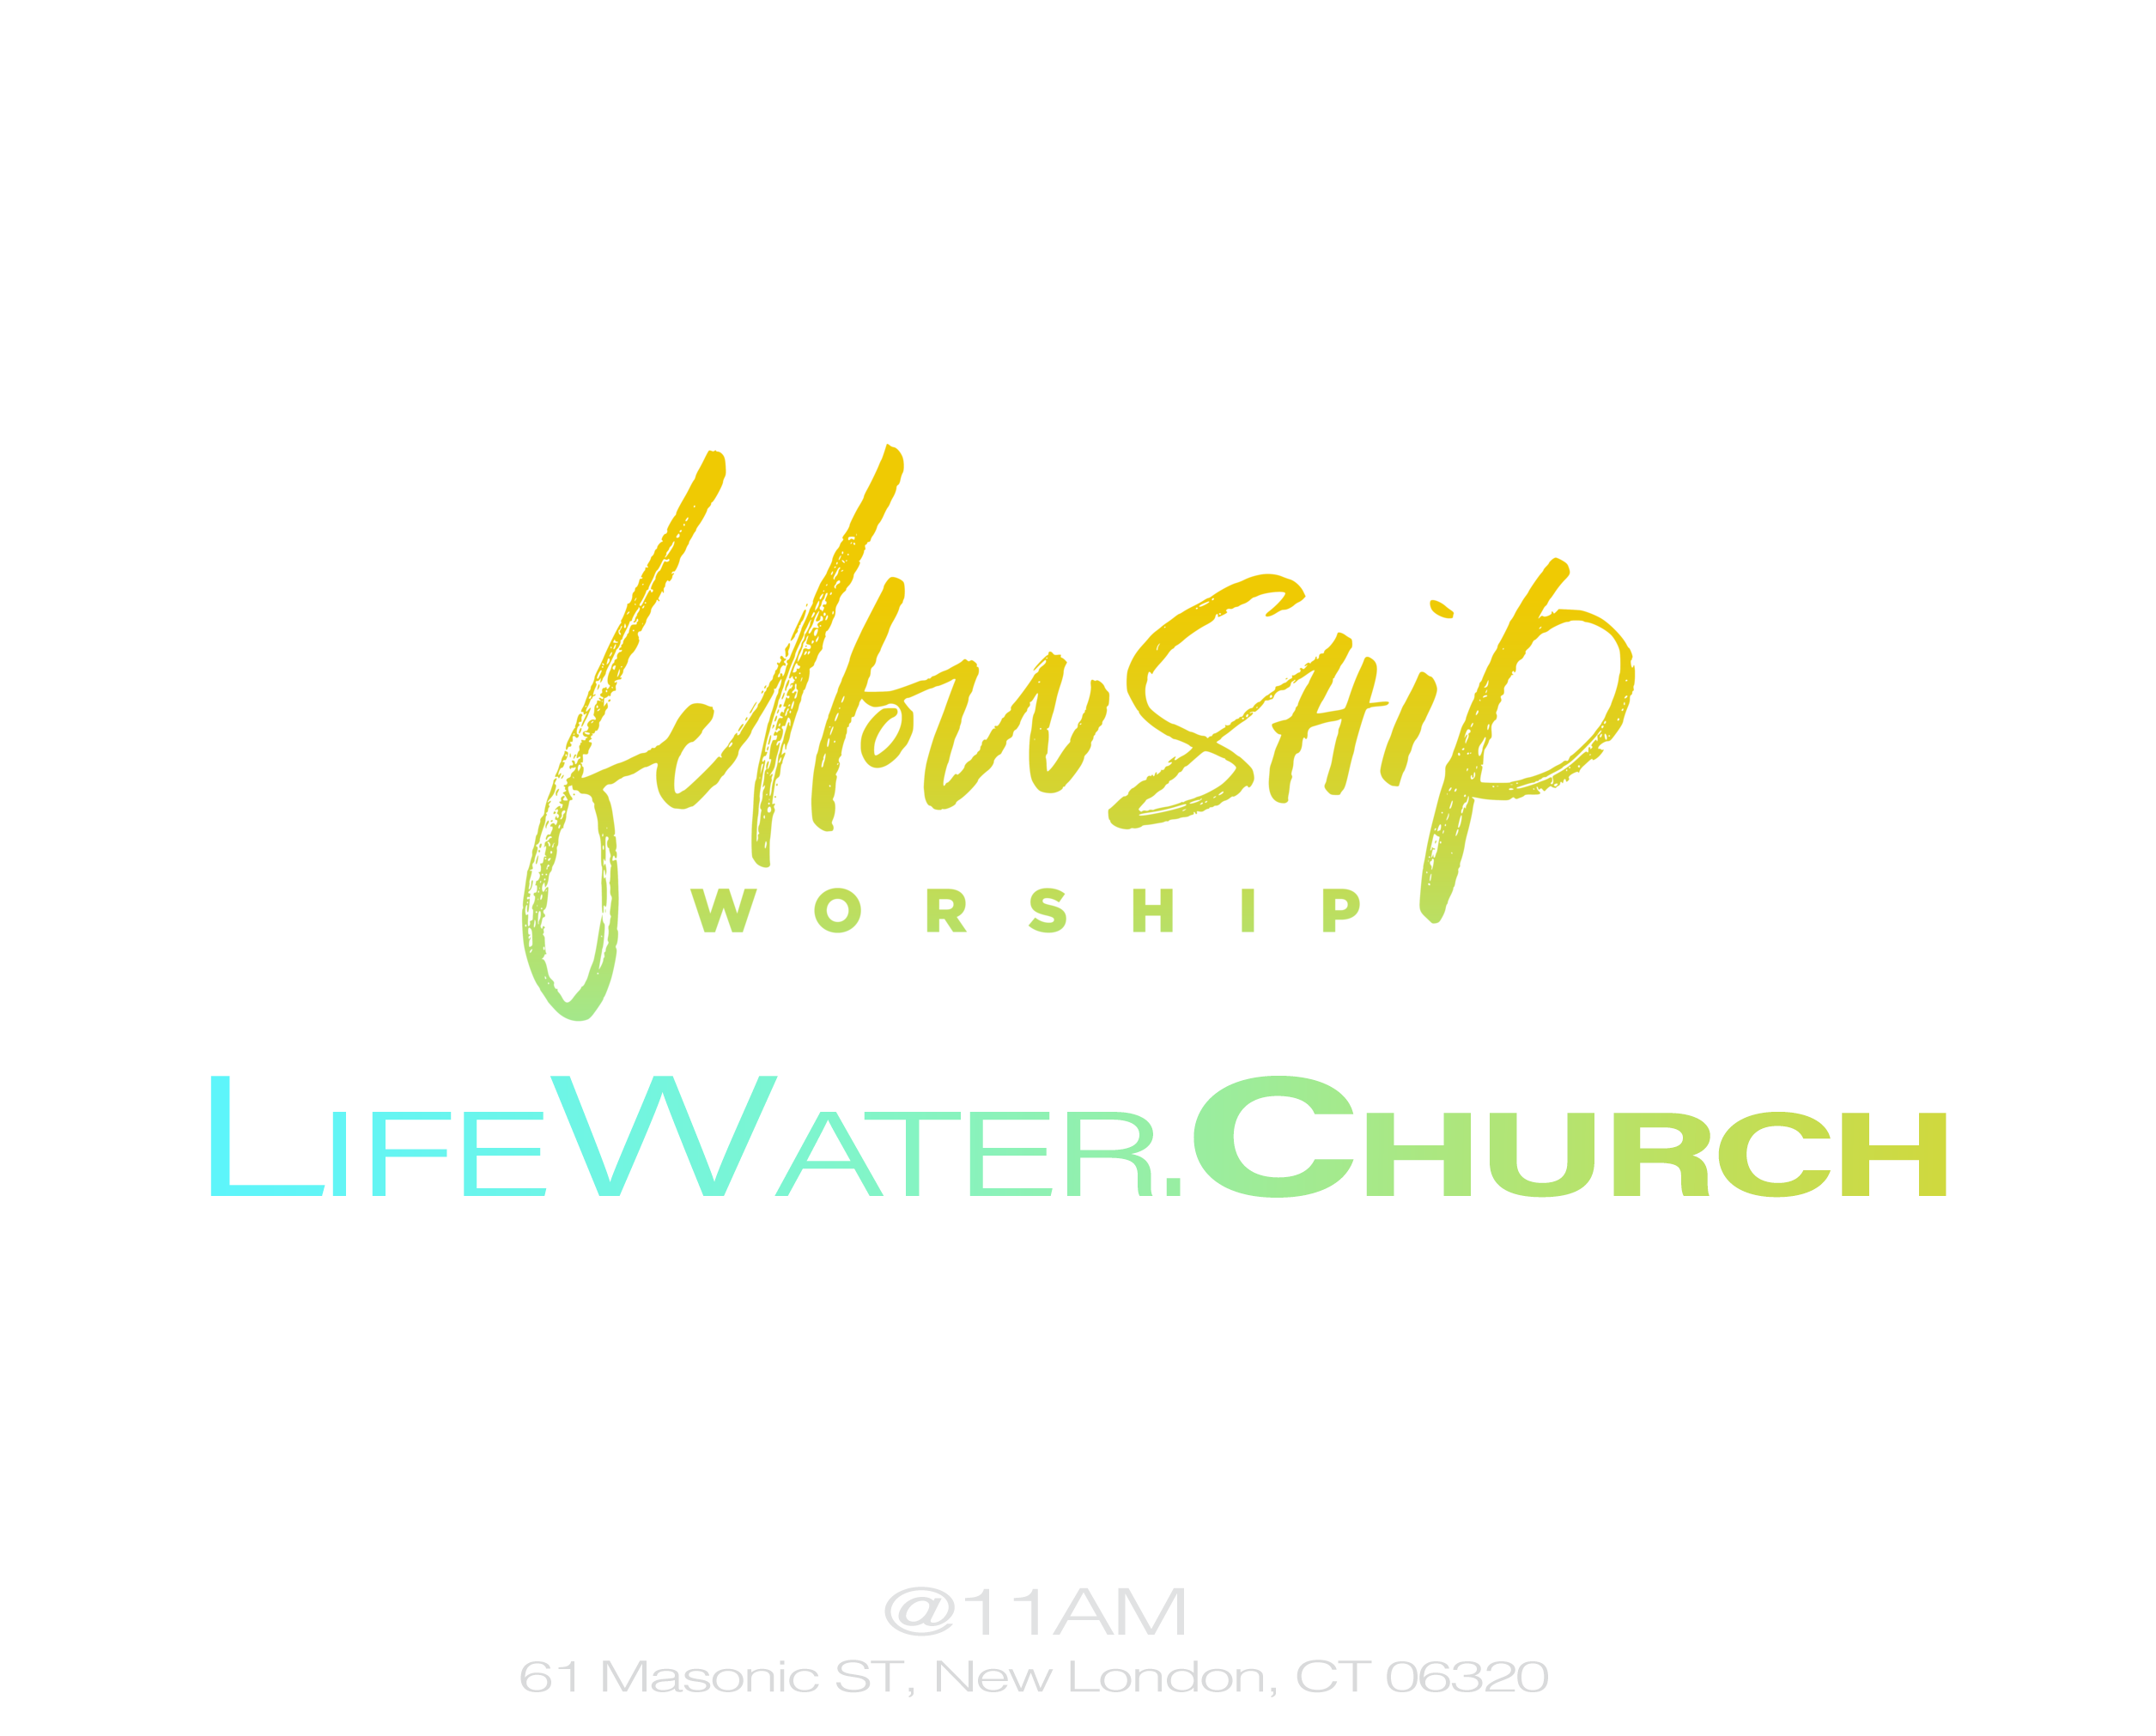 What to expect at LifeWater Church